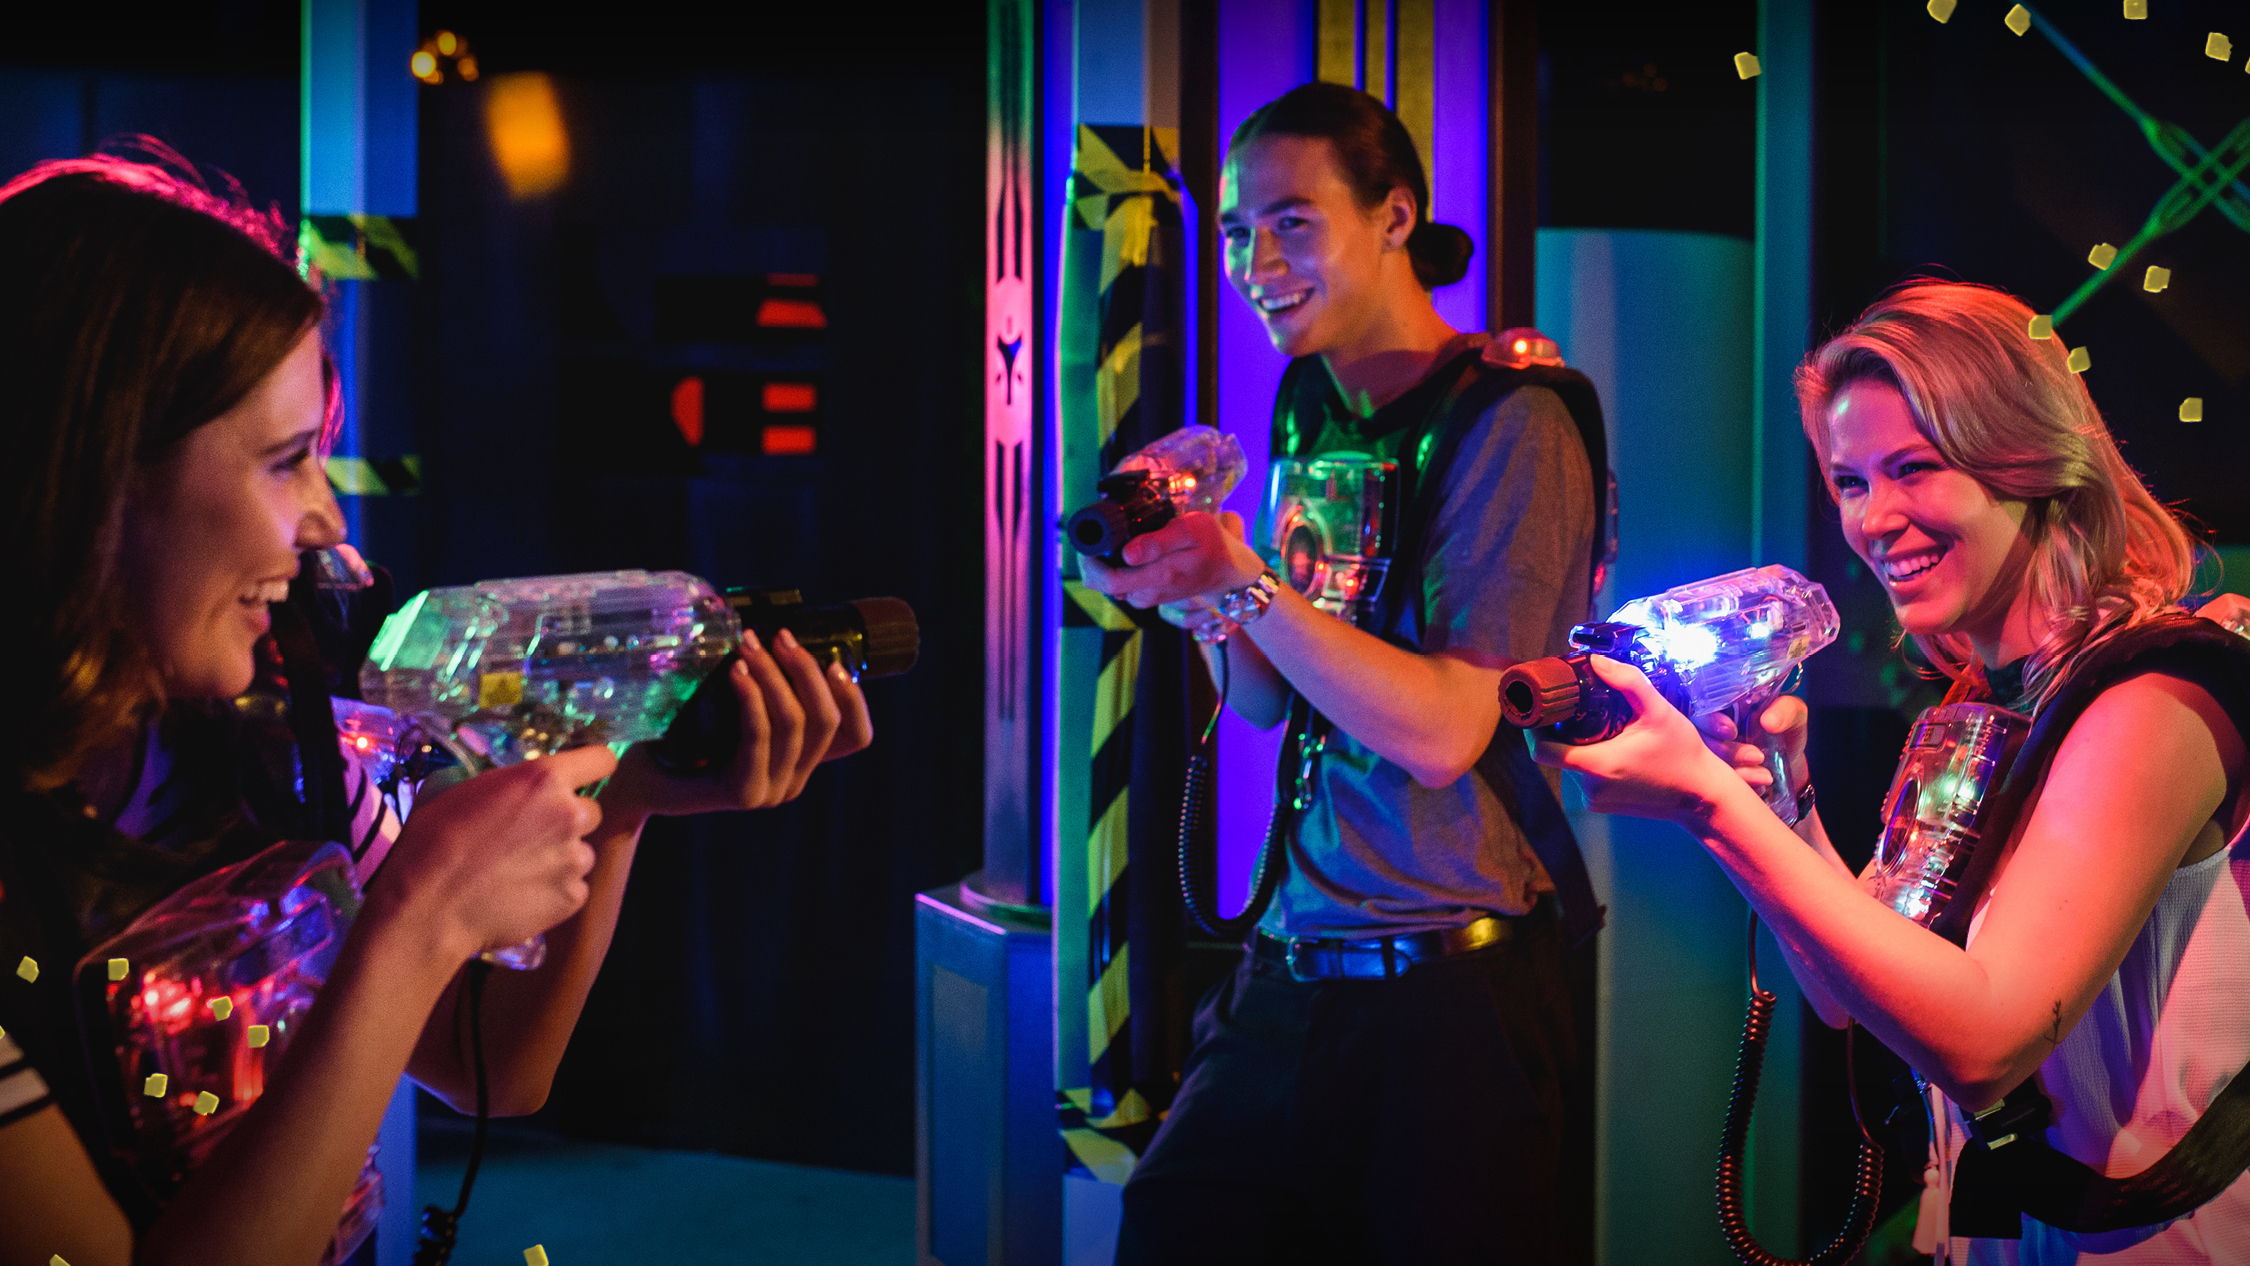 Avoid FOMO these holidays with all the action at Kingpin